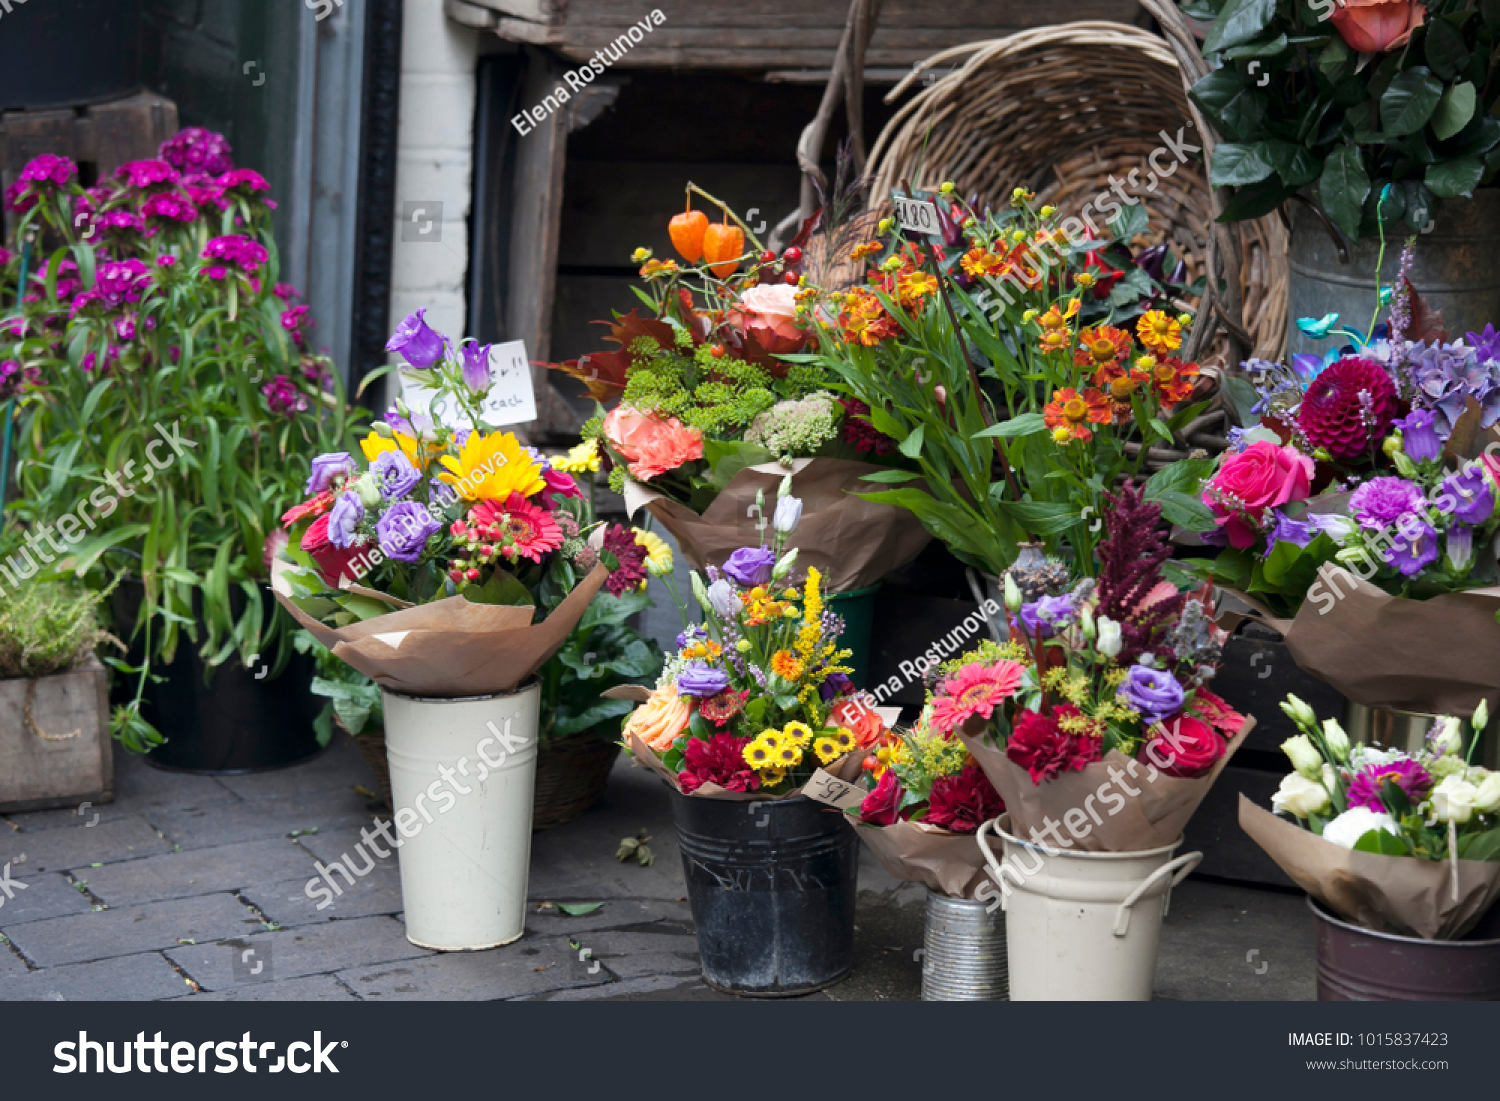 A display of bunches of vibrant flowers for sale ez canvas izmirmasajfo